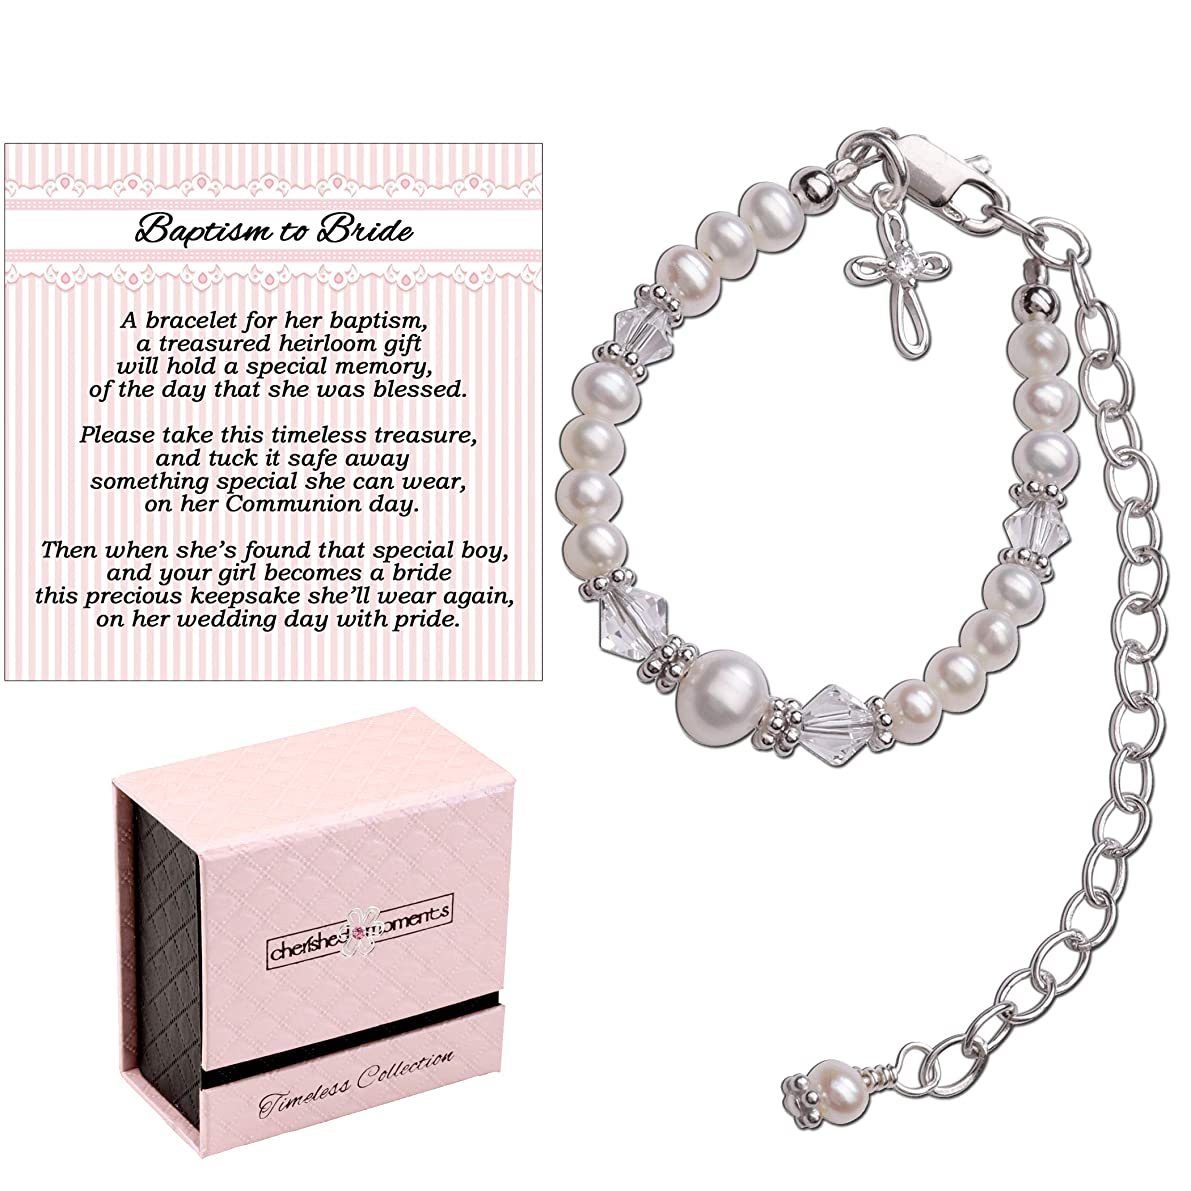 Baptism to Bride Cross Bracelet for Girls in Sterling Silver and Cultured Pearl